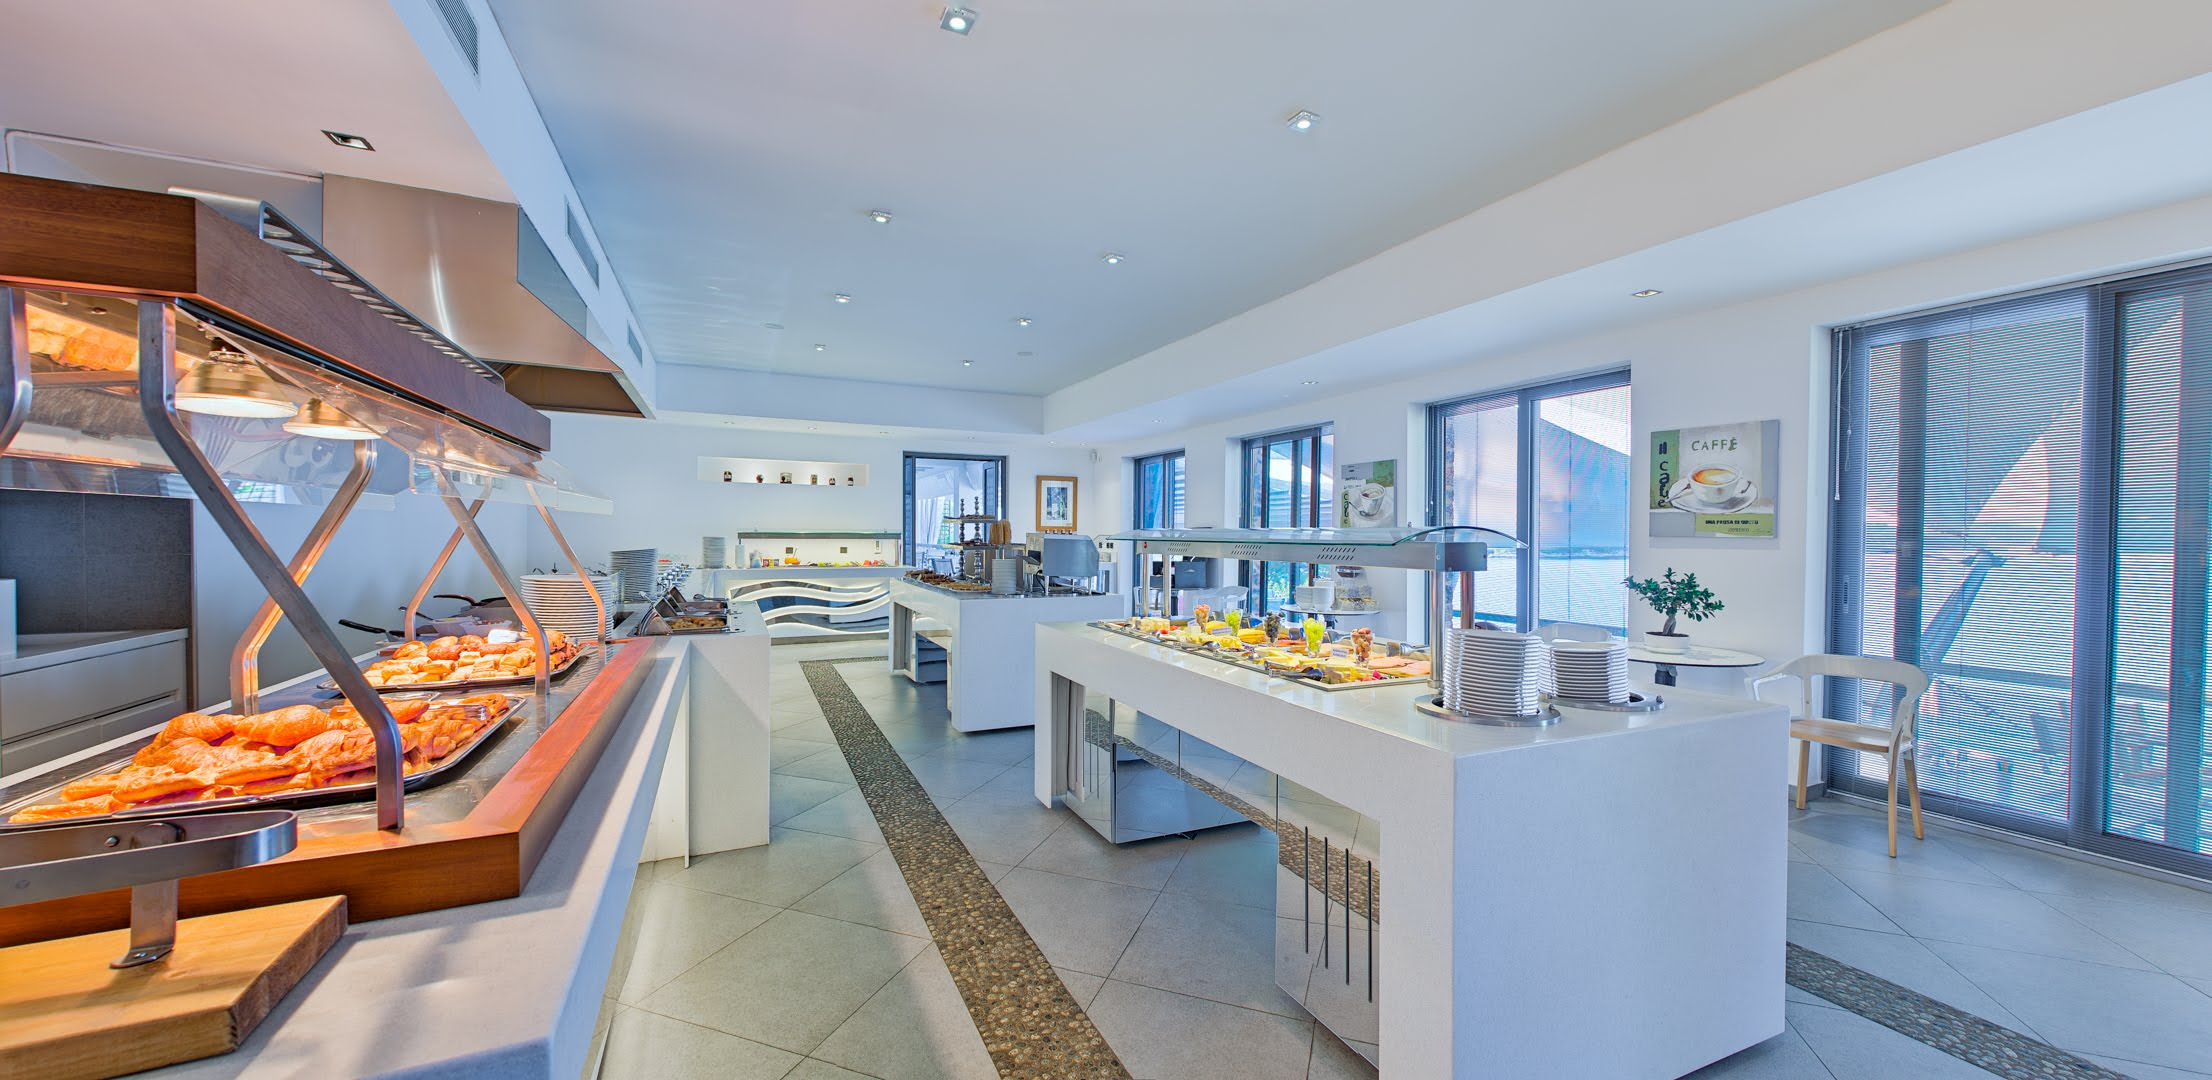 skopelos hotels adrina resort buffet 18